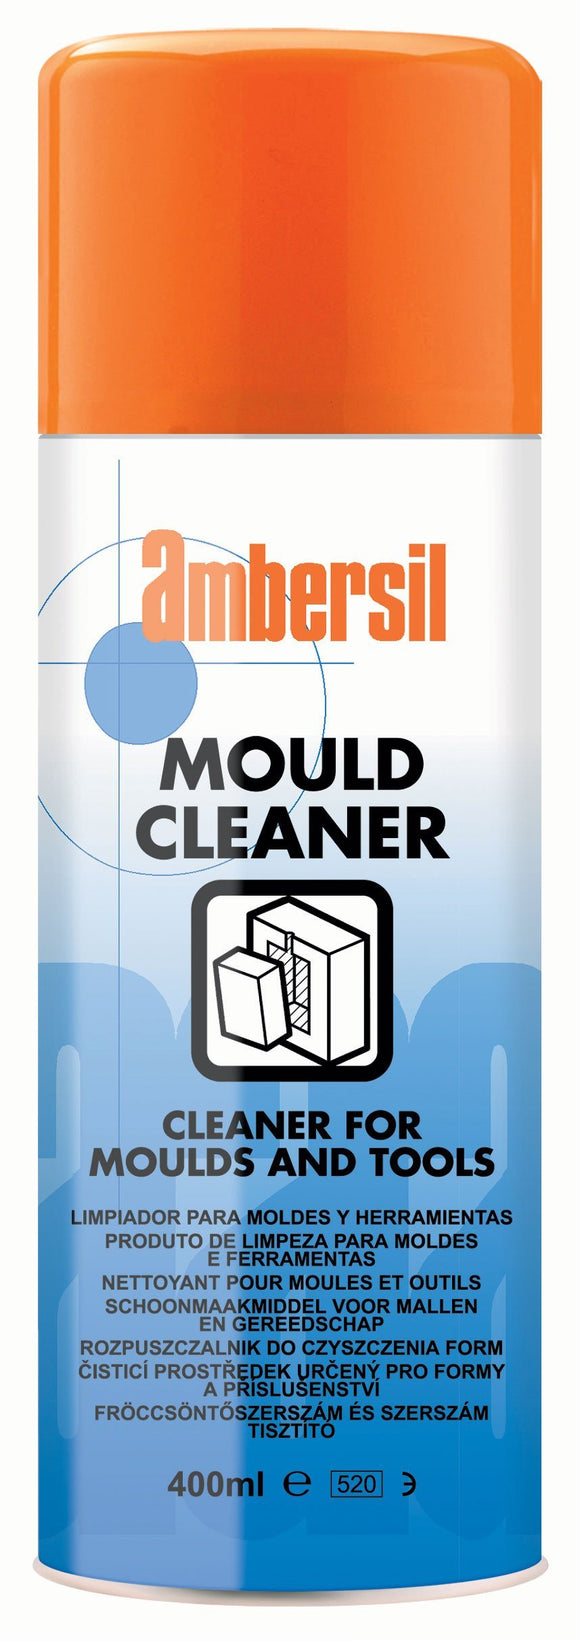 Mould_Sprays_and_lubricants - Mould Cleaner